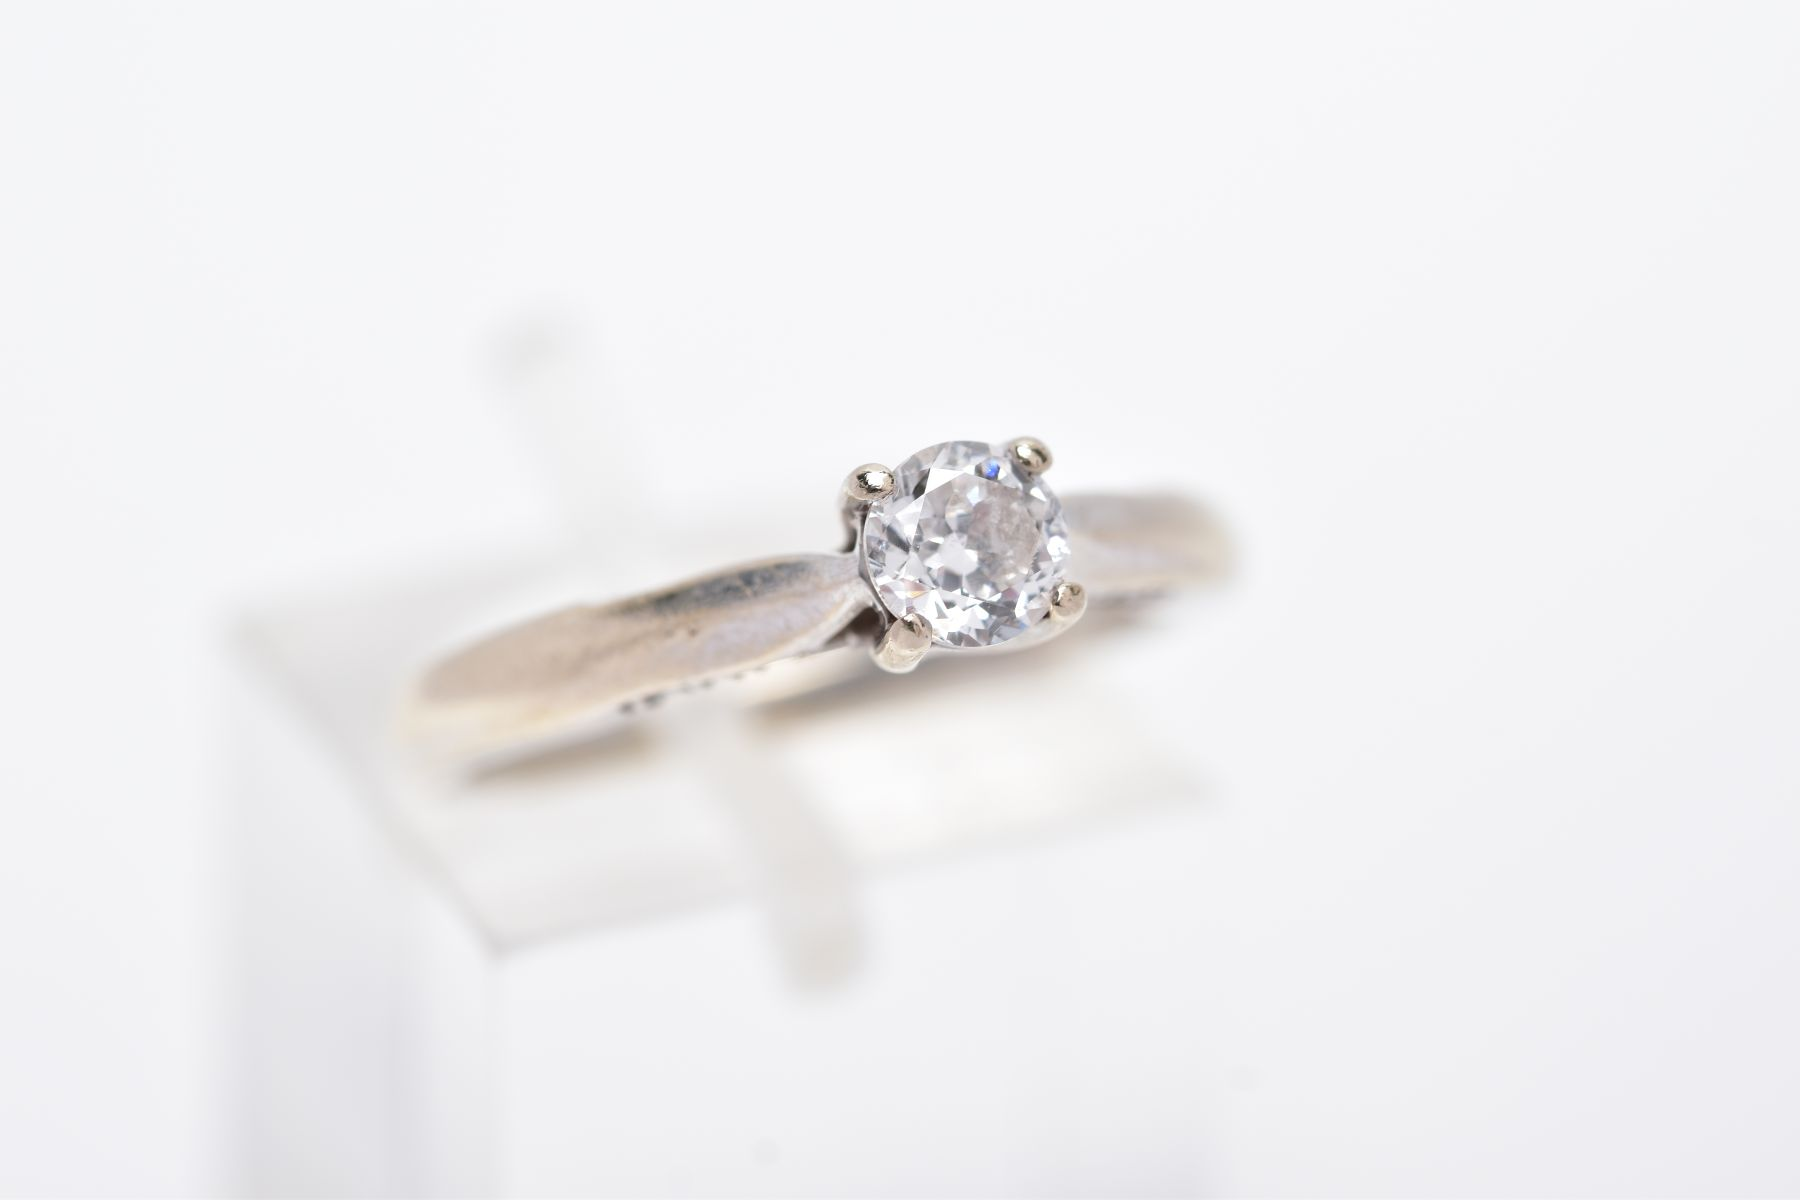 AN 18CT WHITE GOLD DIAMOND RING, designed with a central claw set, round brilliant cut diamond, - Image 4 of 4